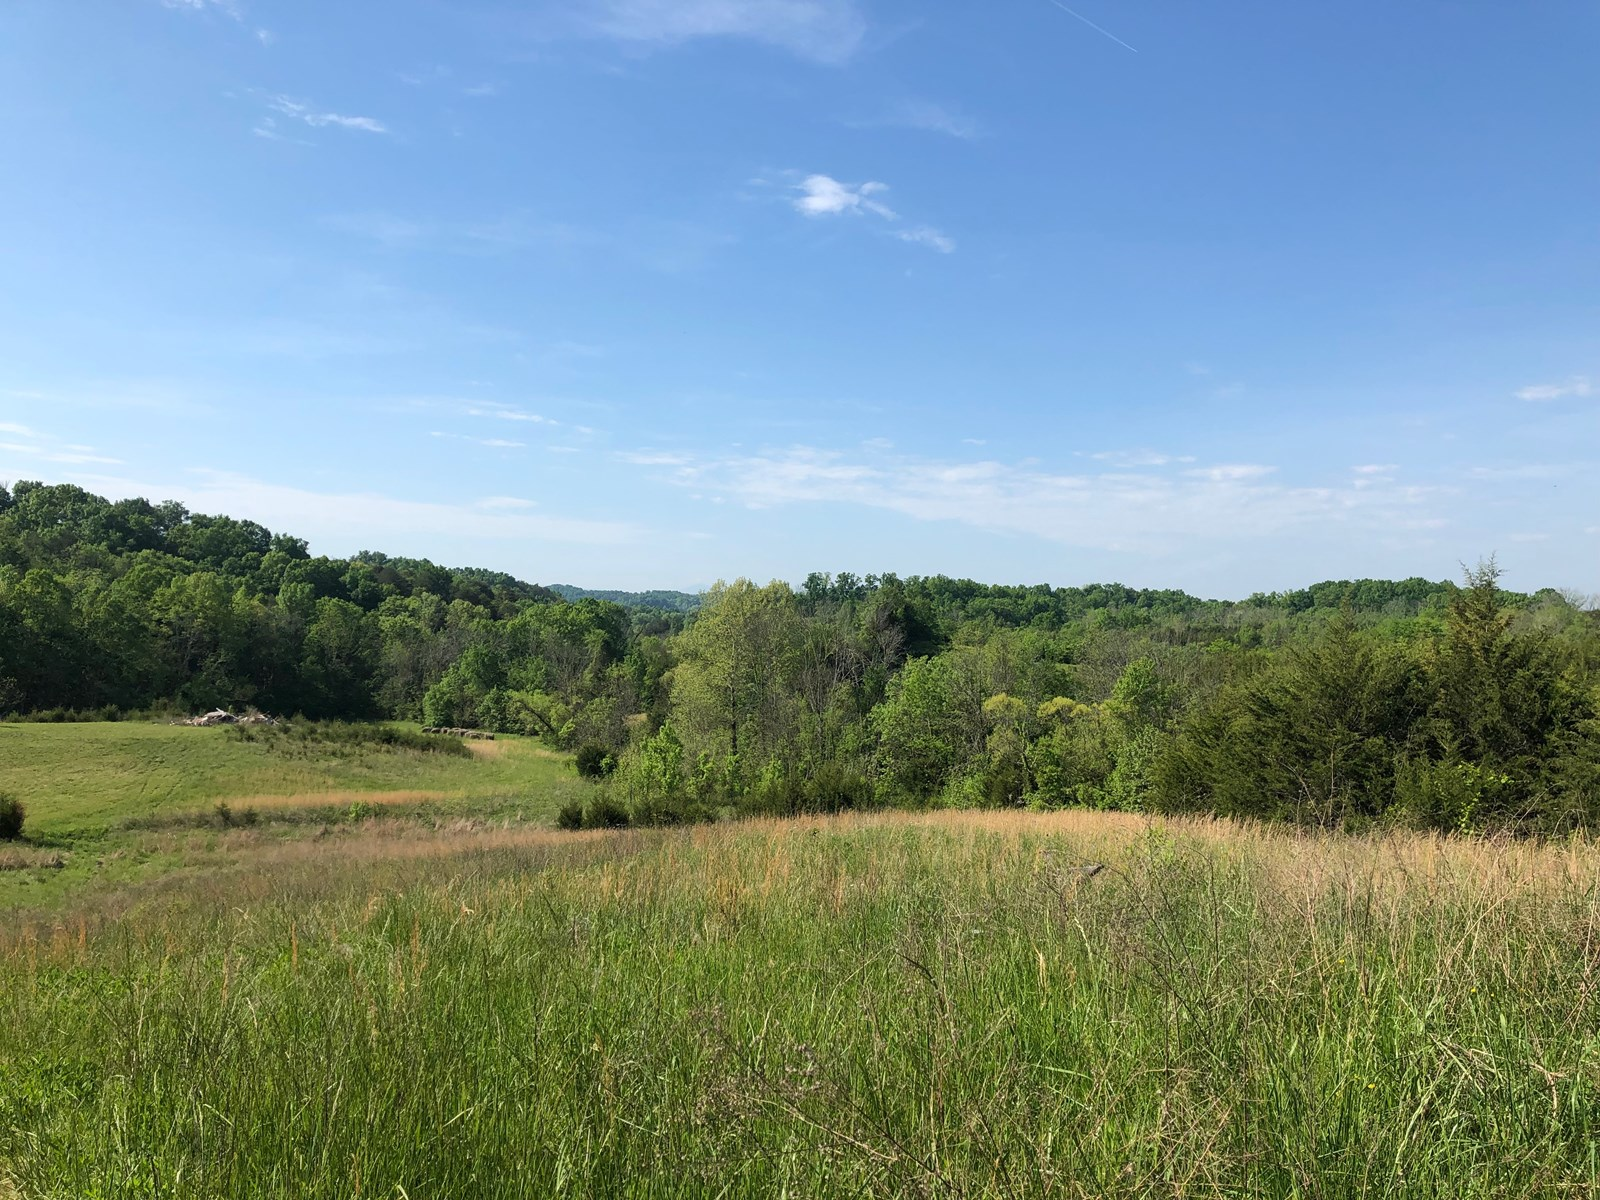 East Tennessee Unrestricted Land for Sale in Greene County